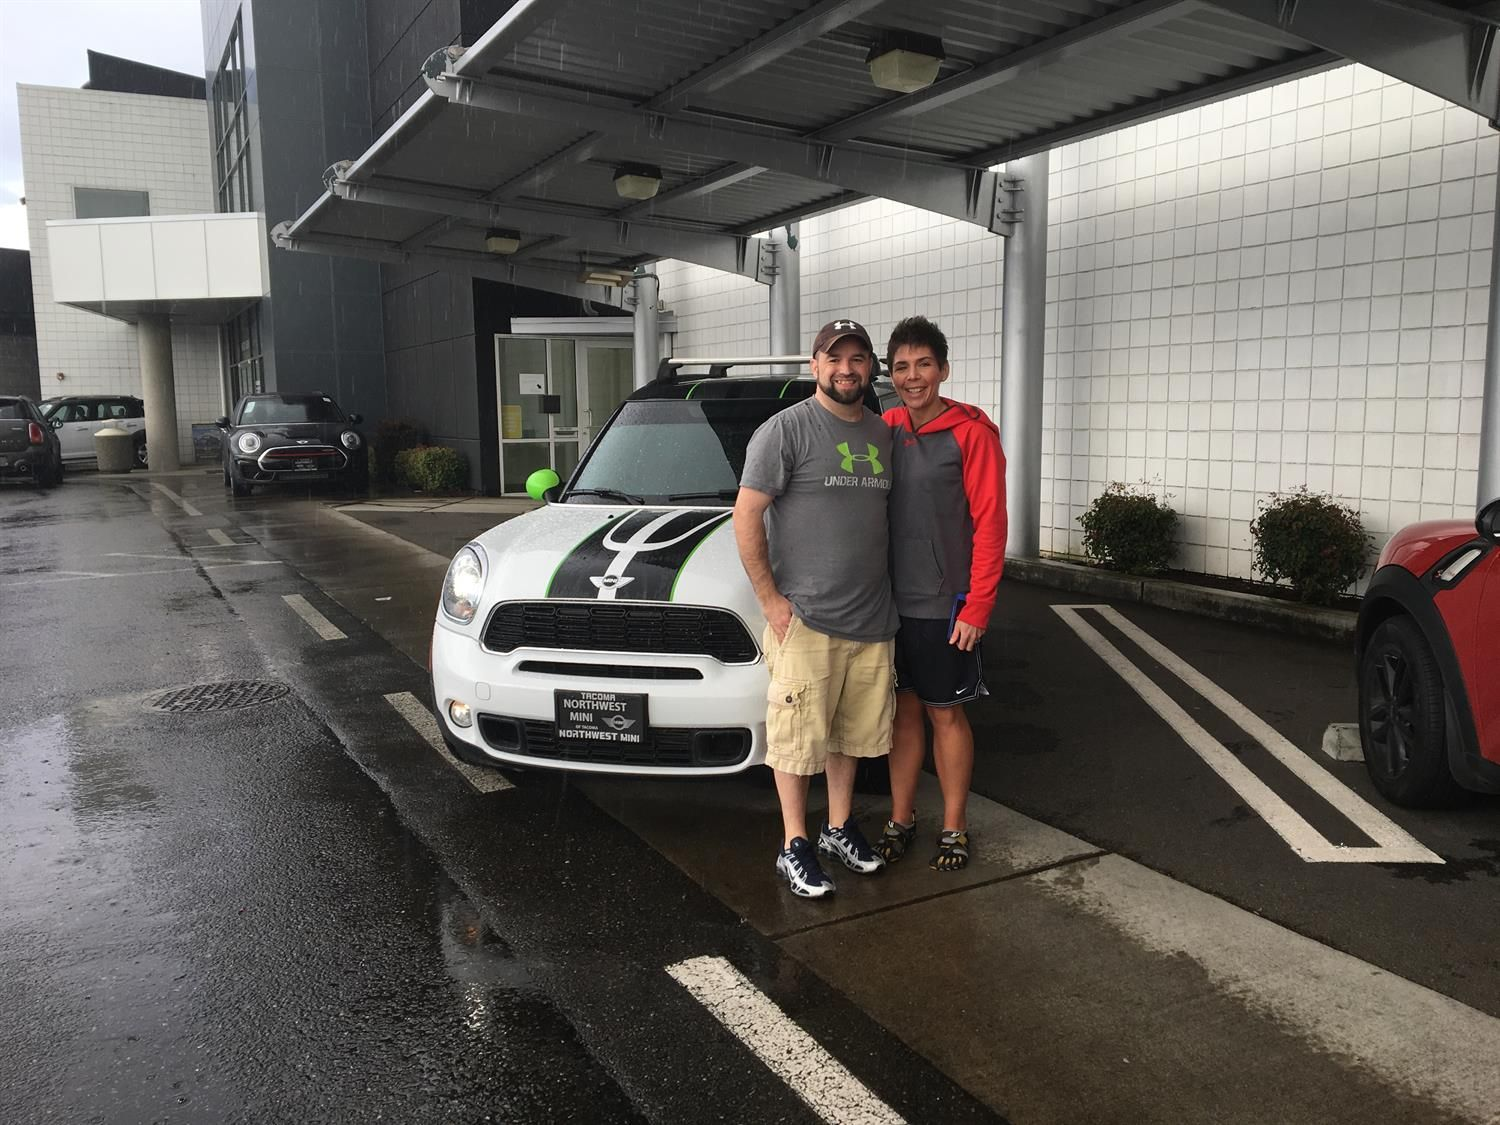 """Jason & Jaimee, wishing you many """"Miles of Smiles"""" in your 2014 MINI COOPER S  COUNTRYMAN!  All the best, Northwest MINI and Pamela Dal Lago."""